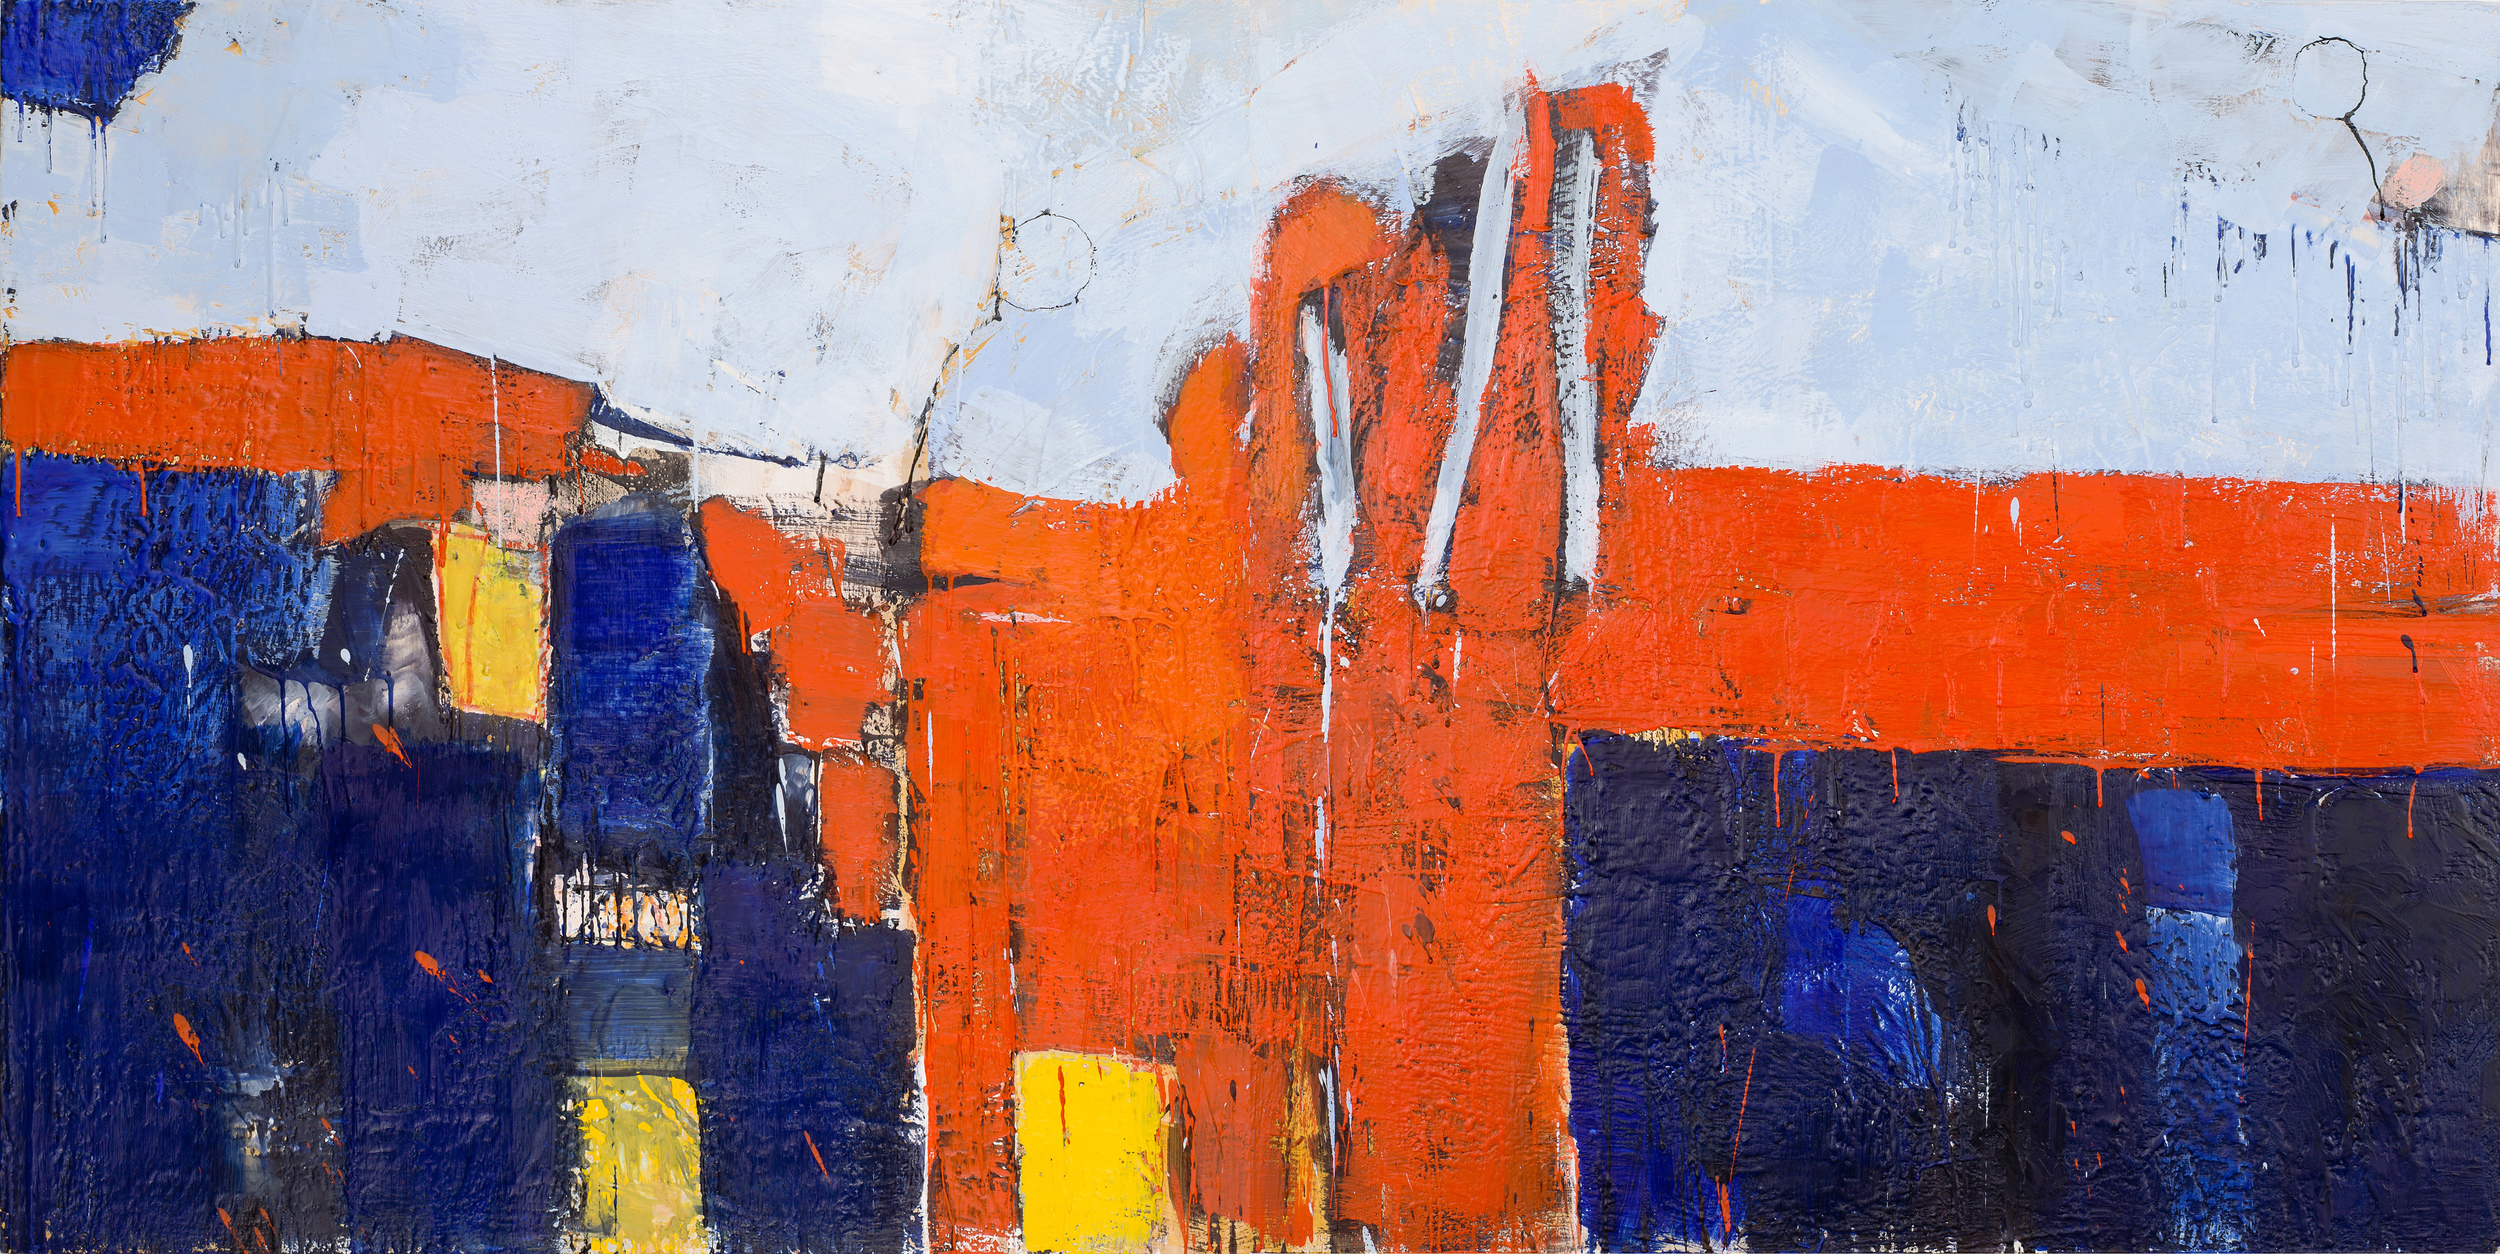 KW-062, Keith Wood, This Time 2, 2015, Encaustic on Panel, 72 x 36,SOLD